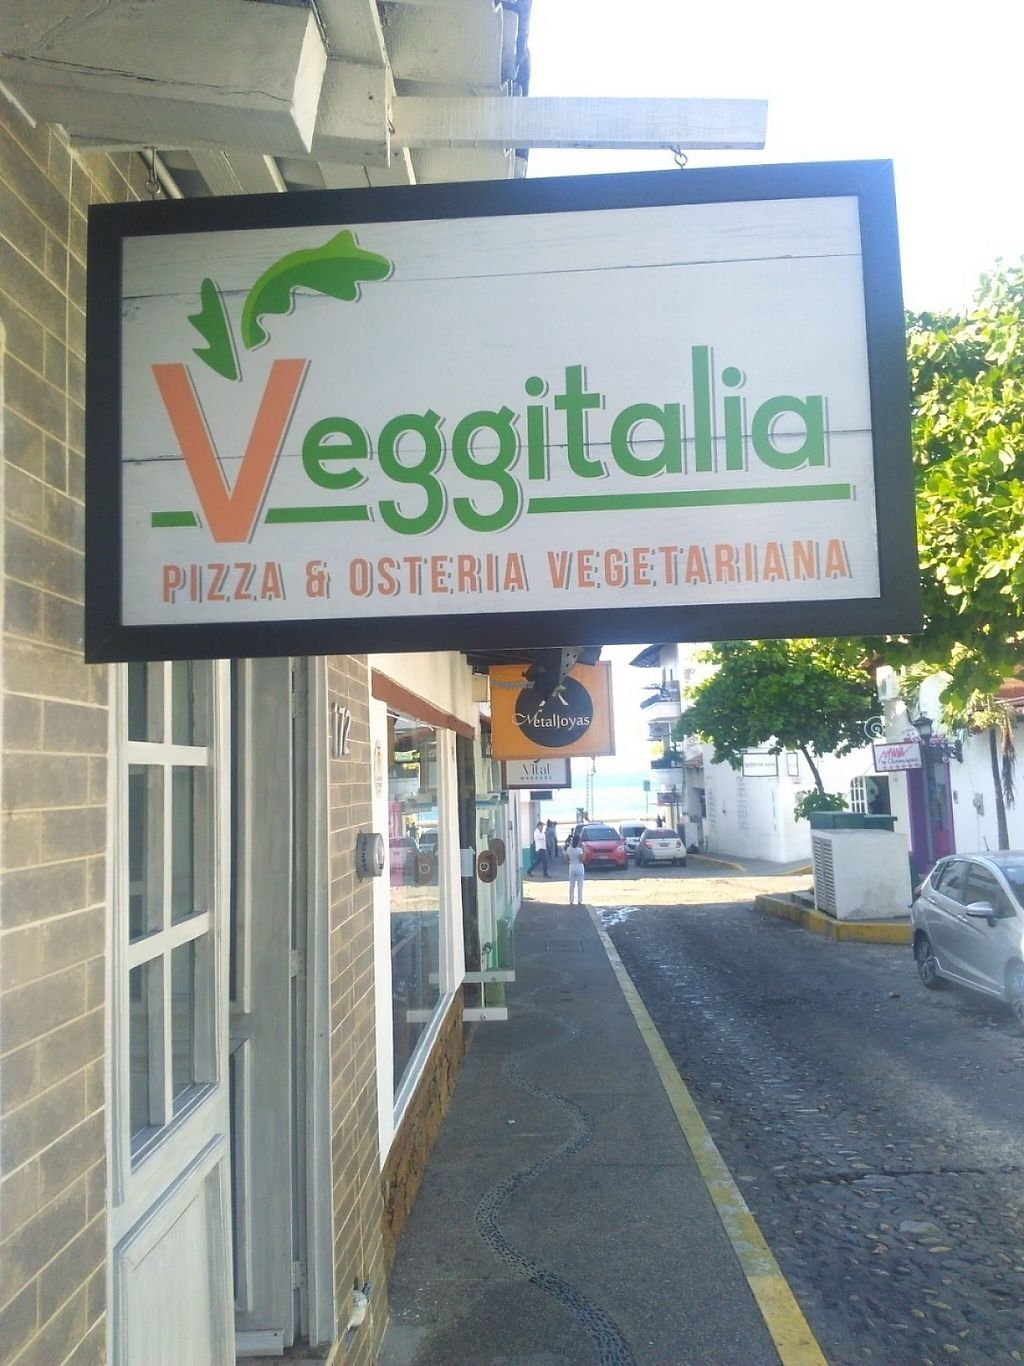 Photo of Veggitalia  by EngelZonderVleugels <br/>View of Malecon  calle Corona  <br/> November 30, 2016  - <a href='/contact/abuse/image/82945/196071'>Report</a>